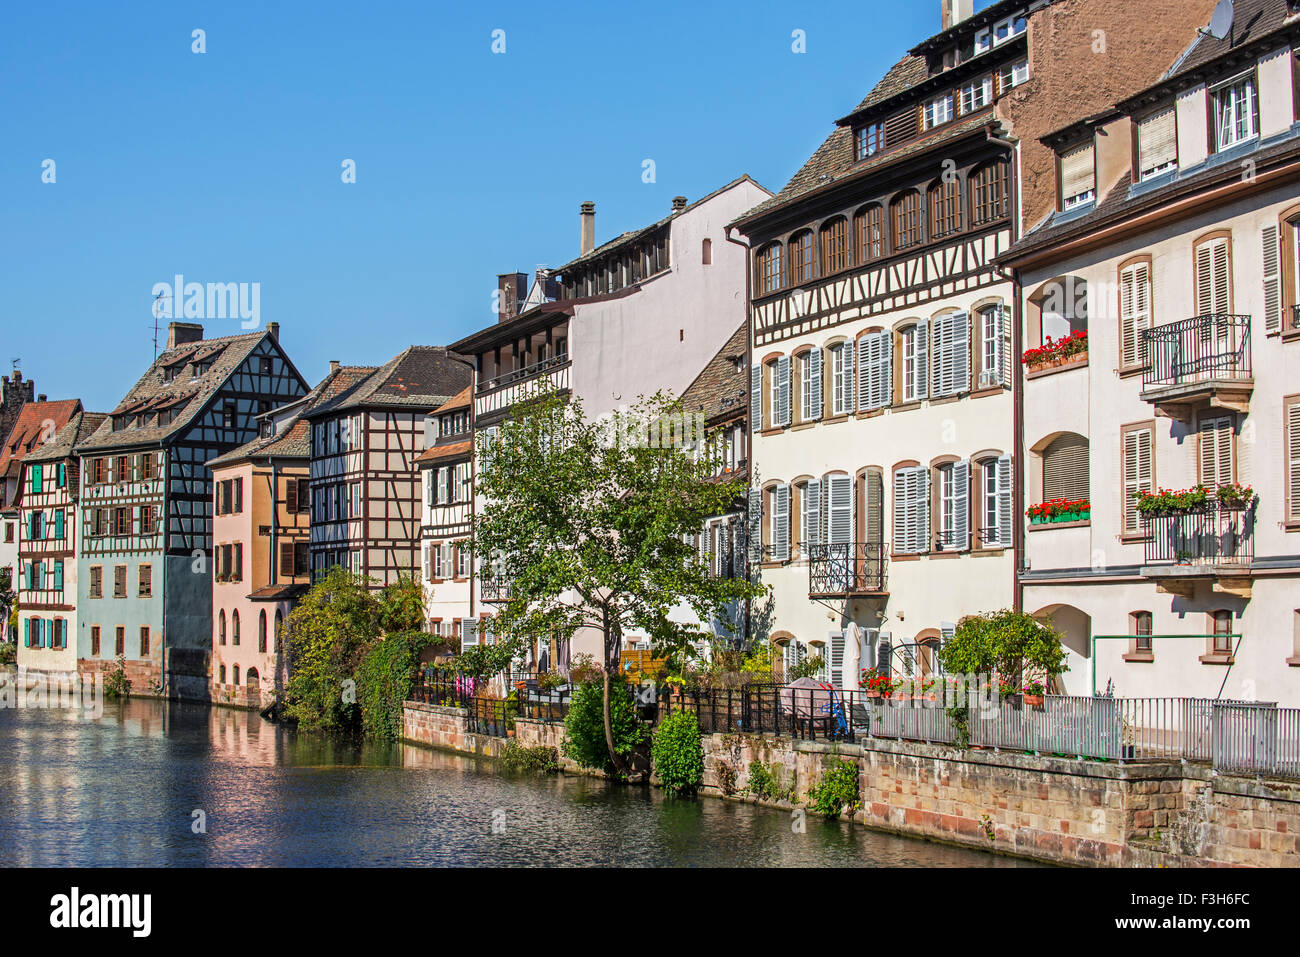 Half-timbered houses along the River Ill in the Petite France quarter of the city Strasbourg, Alsace, France - Stock Image